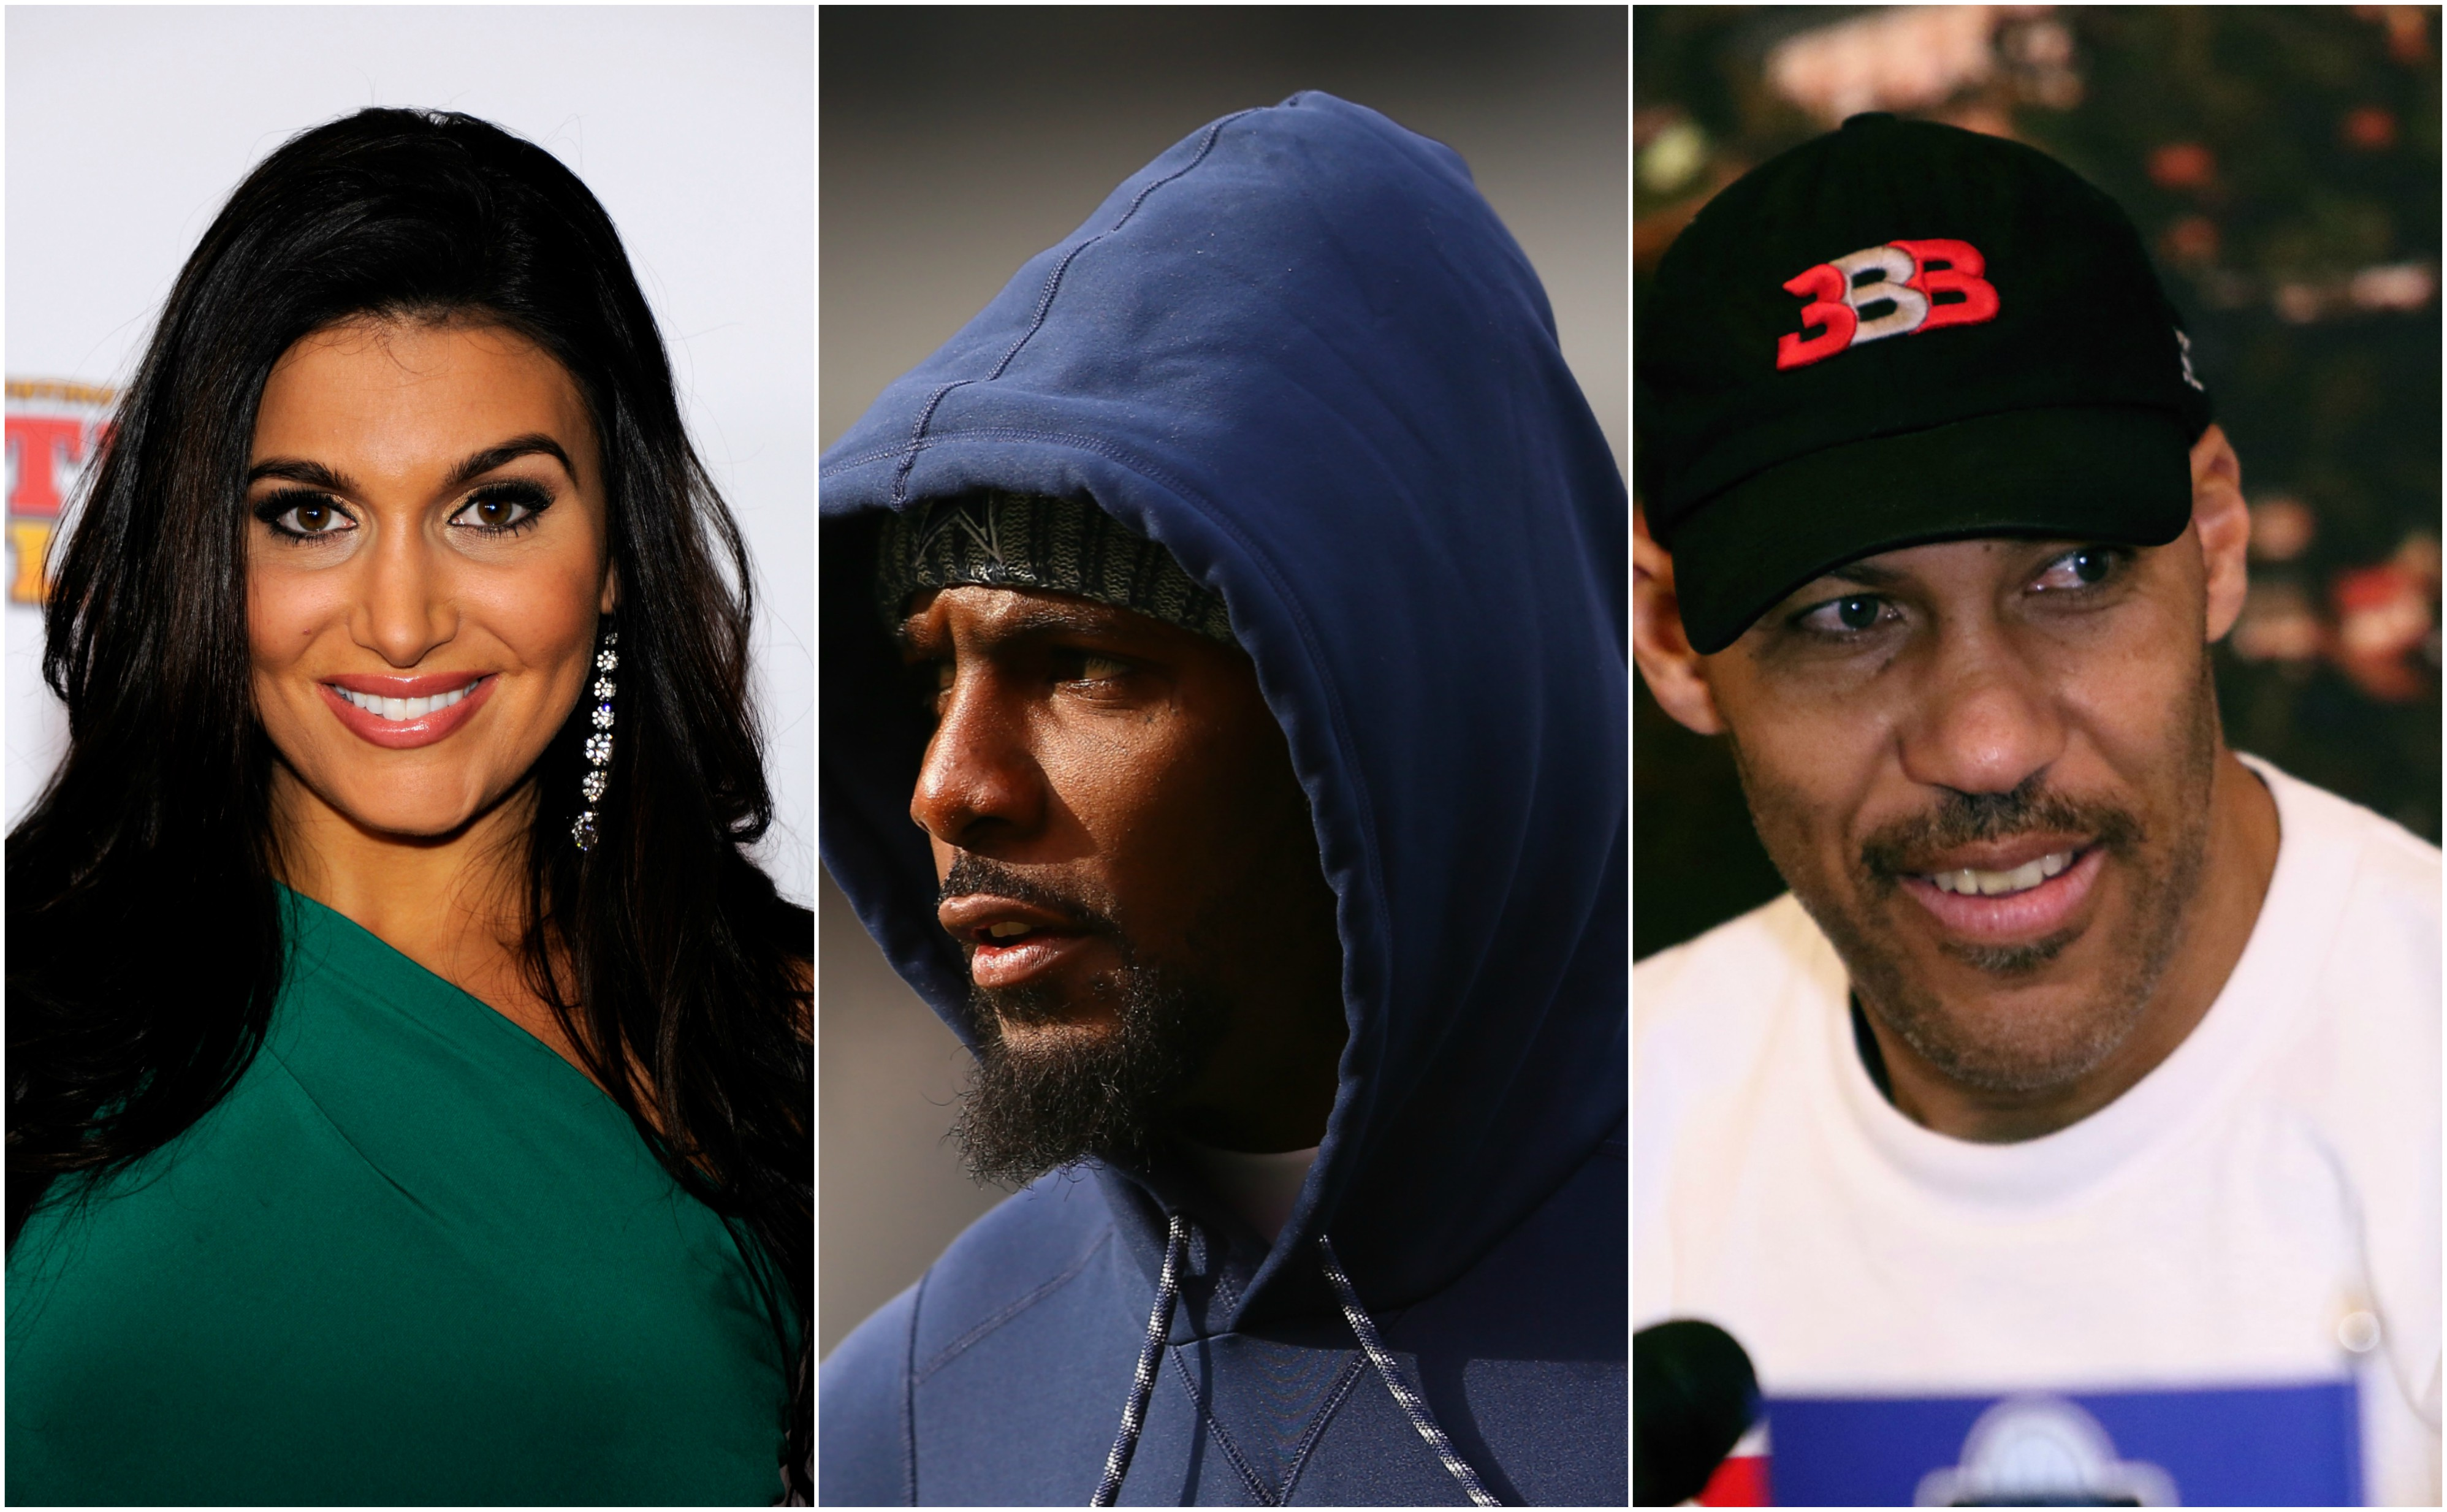 Dez Bryant Calls Out Molly Qerim For Her Immaturity Defends